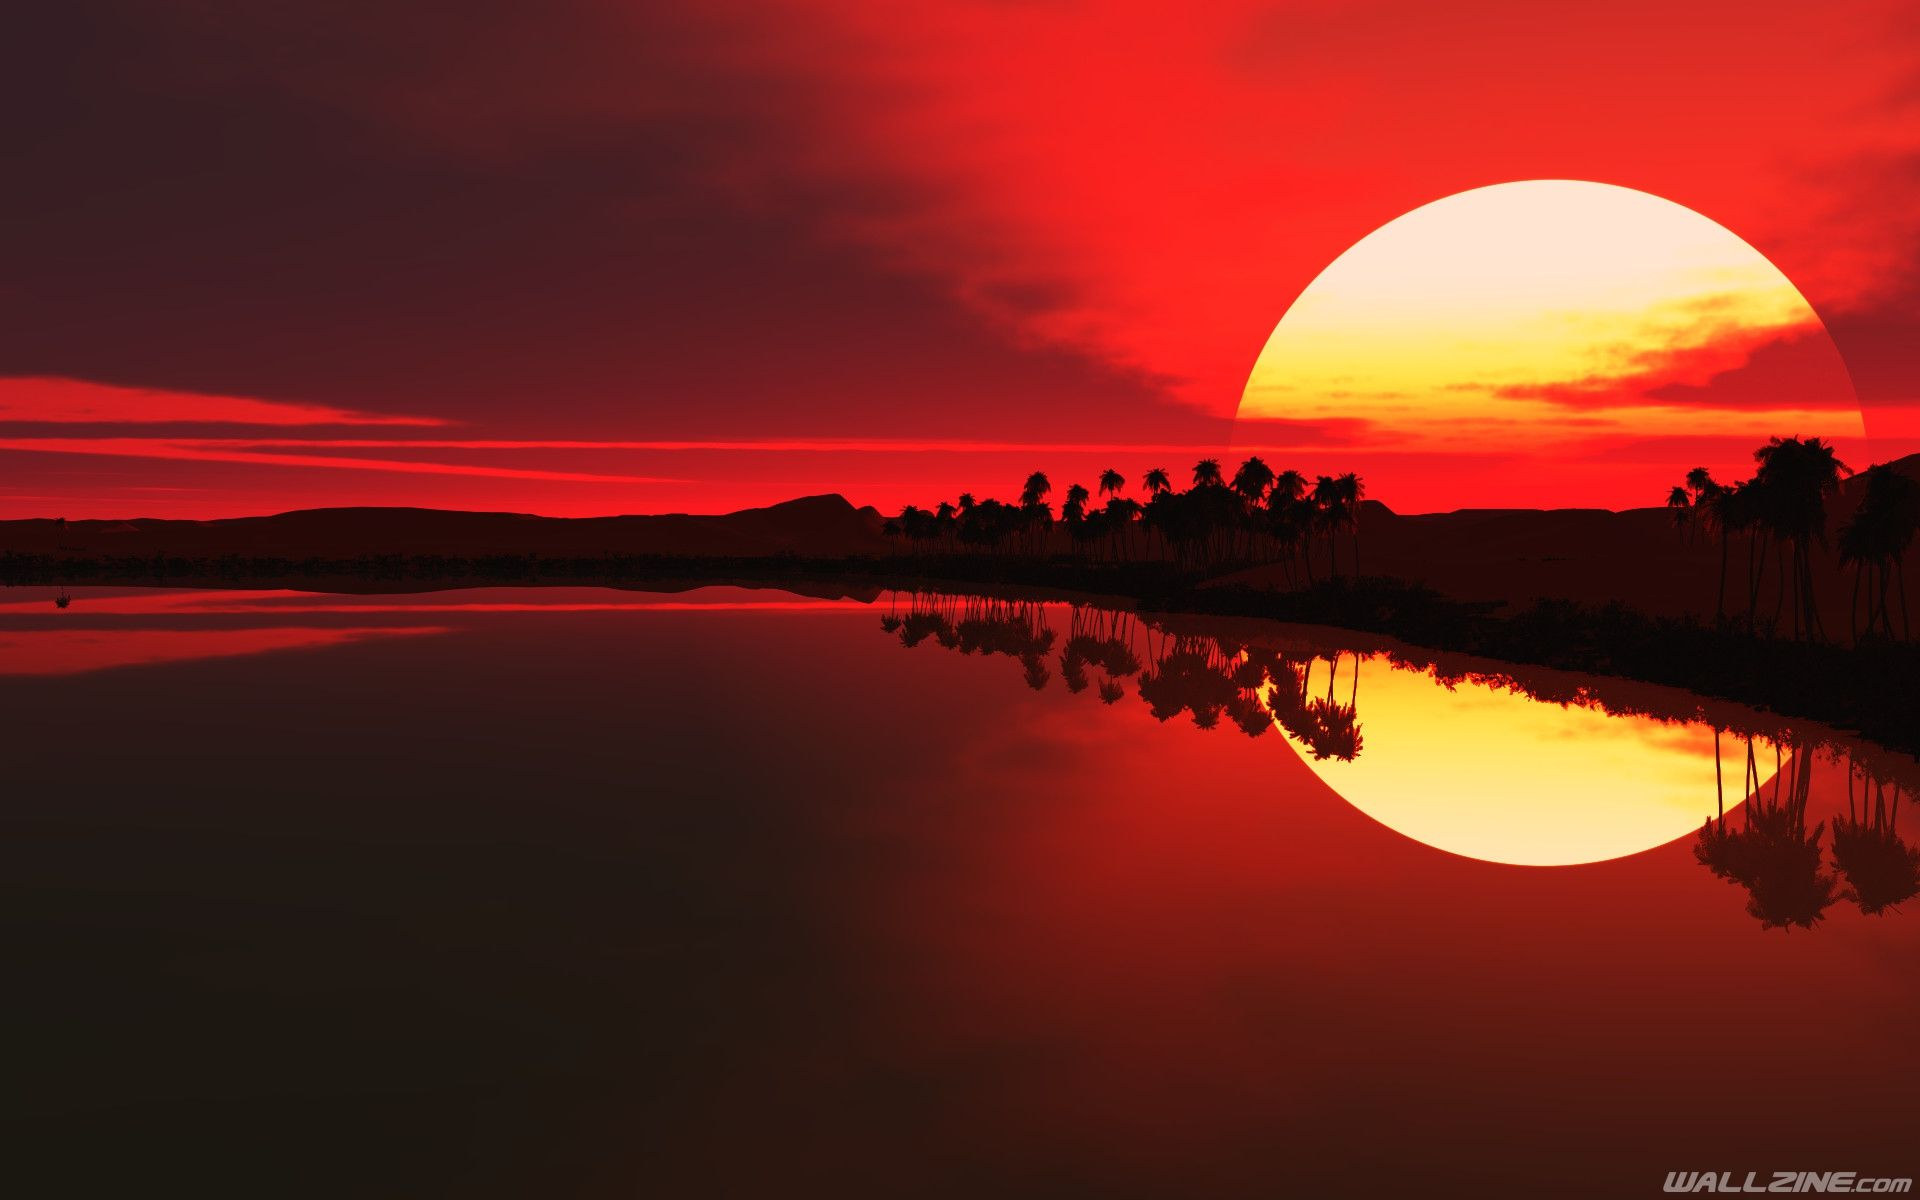 Red Sunset Artwork Wallpaper